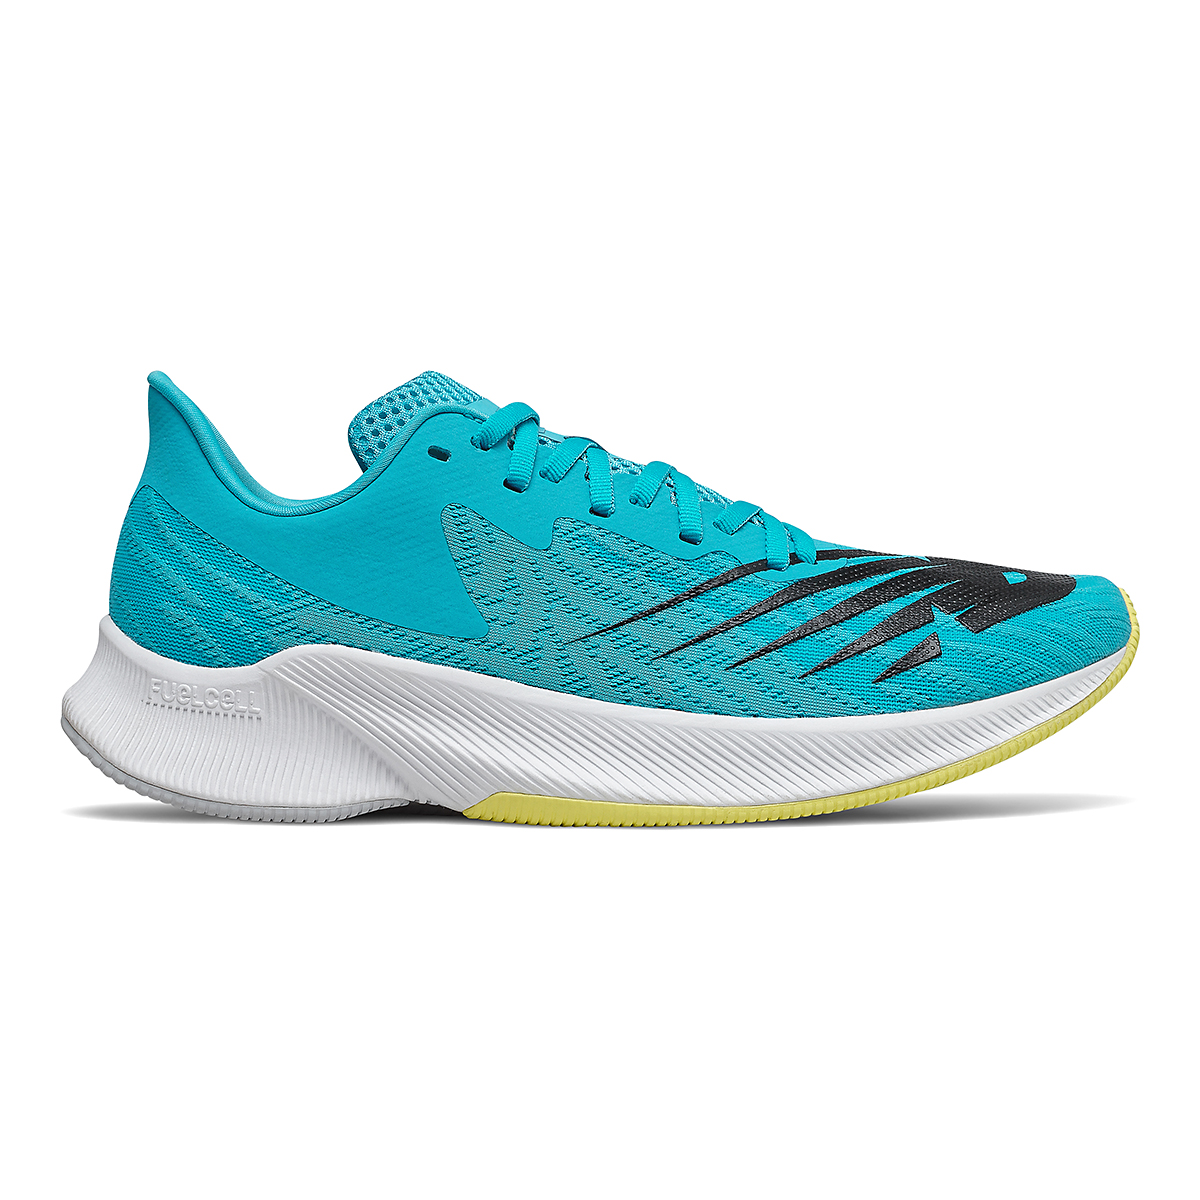 Men's New Balance Fuelcell Prism Running Shoe - Color: Virtual Sky/First Light - Size: 7 - Width: Wide, Virtual Sky/First Light, large, image 1